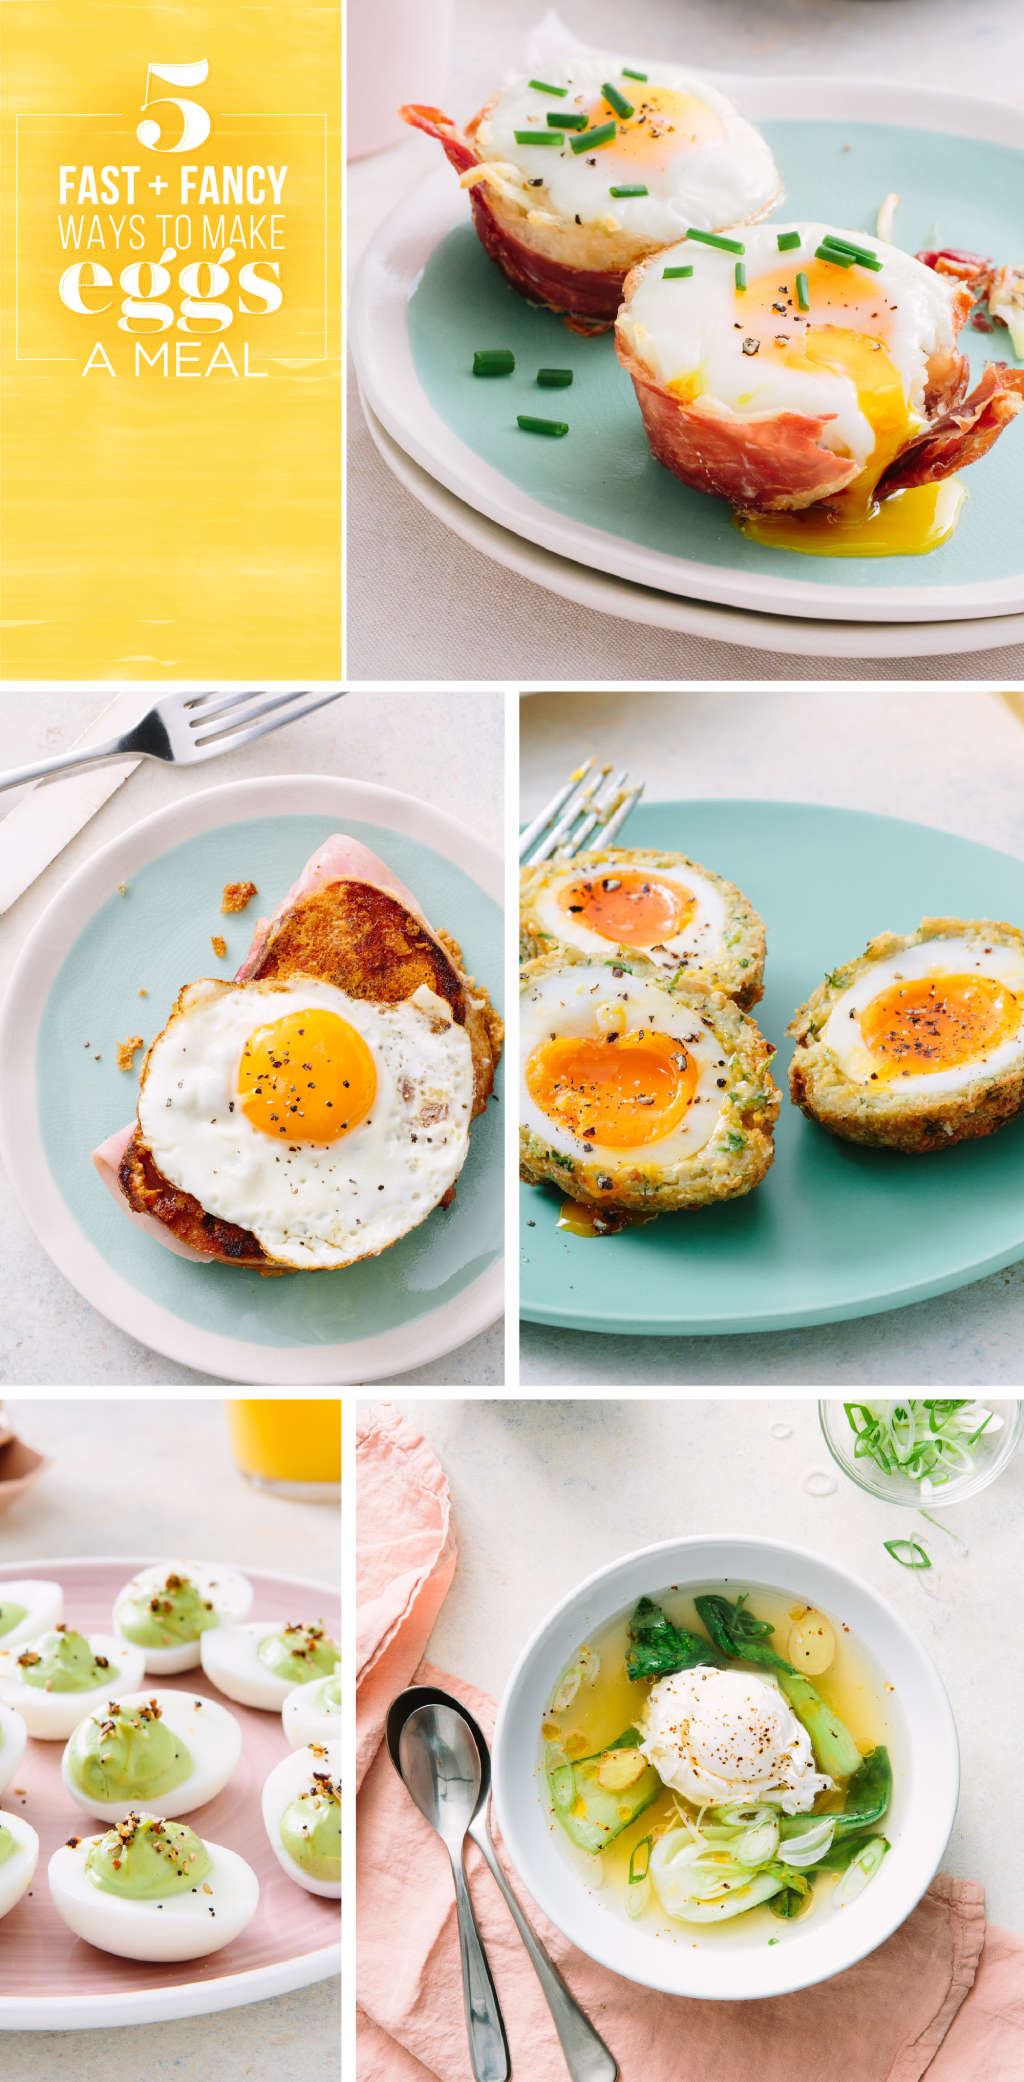 5 Easy, Fancy Ways to Make Eggs a Meal